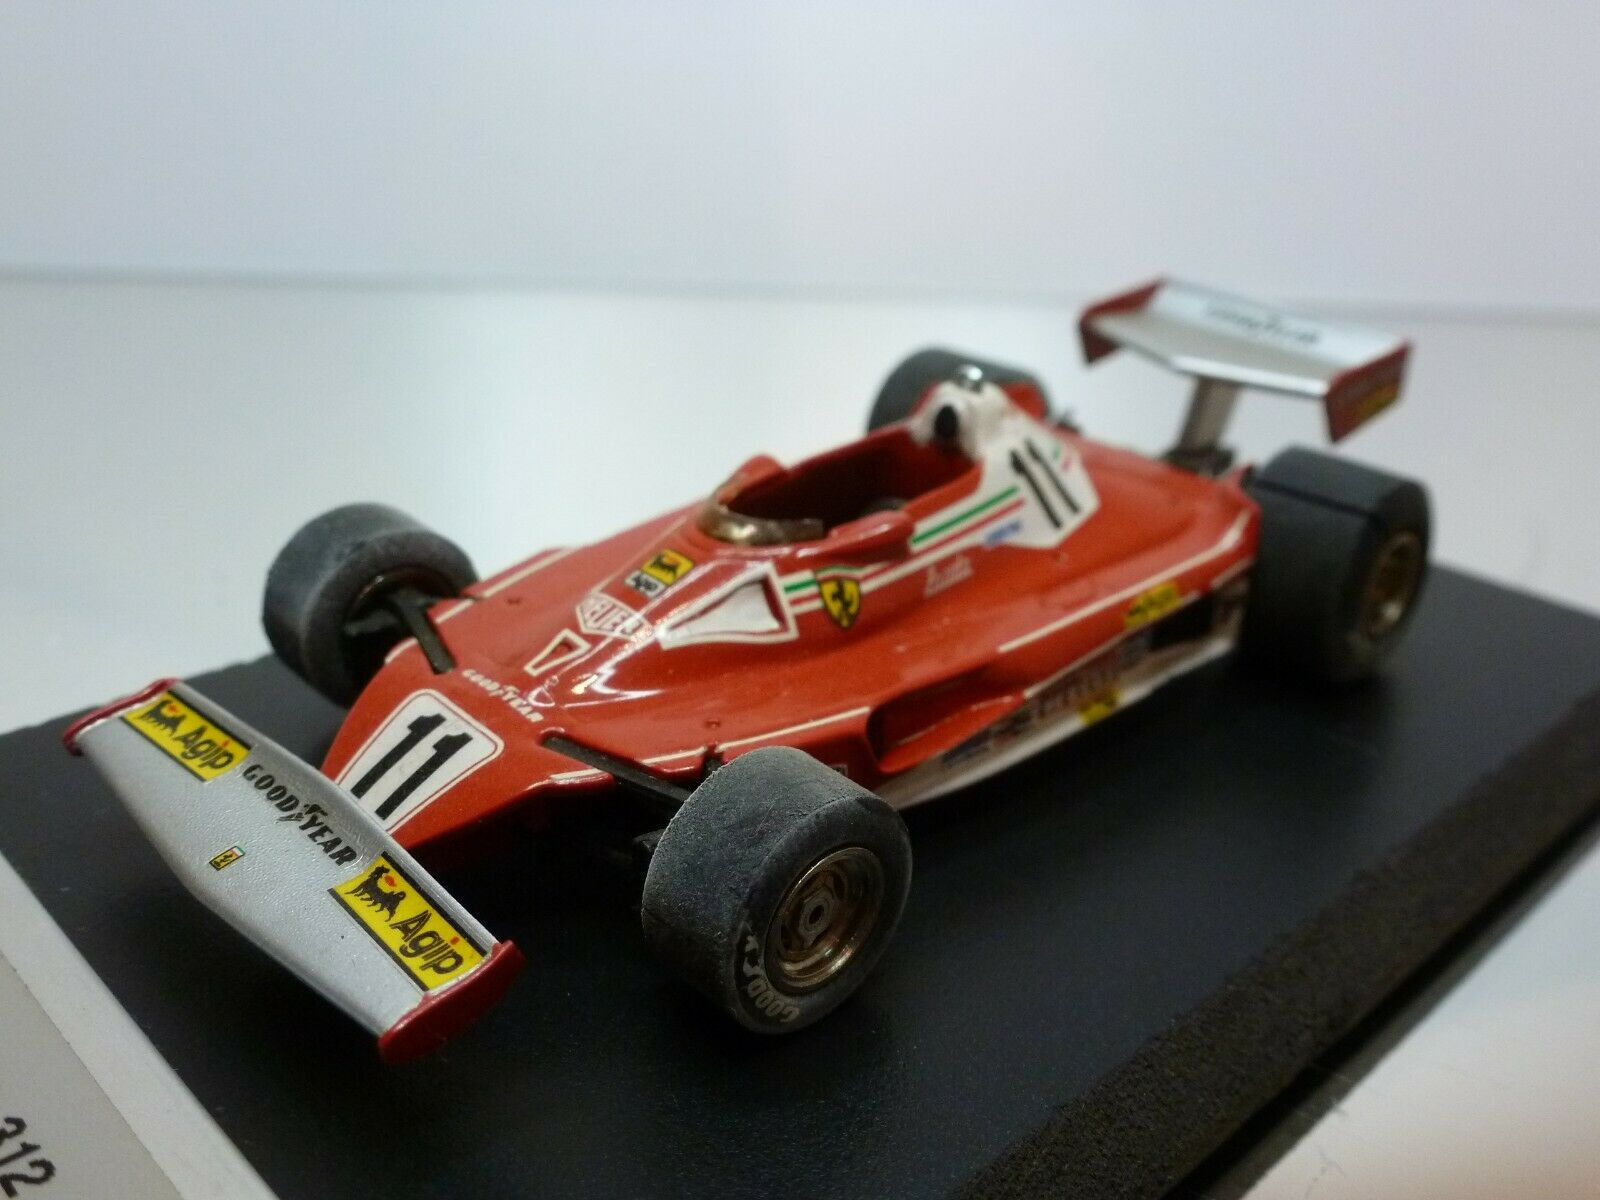 Obtén lo ultimo TENARIV FERRARI 312 T2 - - - GP MONACO '77 LAUDA  11 - F1 rojo 1 43 VERY GOOD on BASE  entrega de rayos